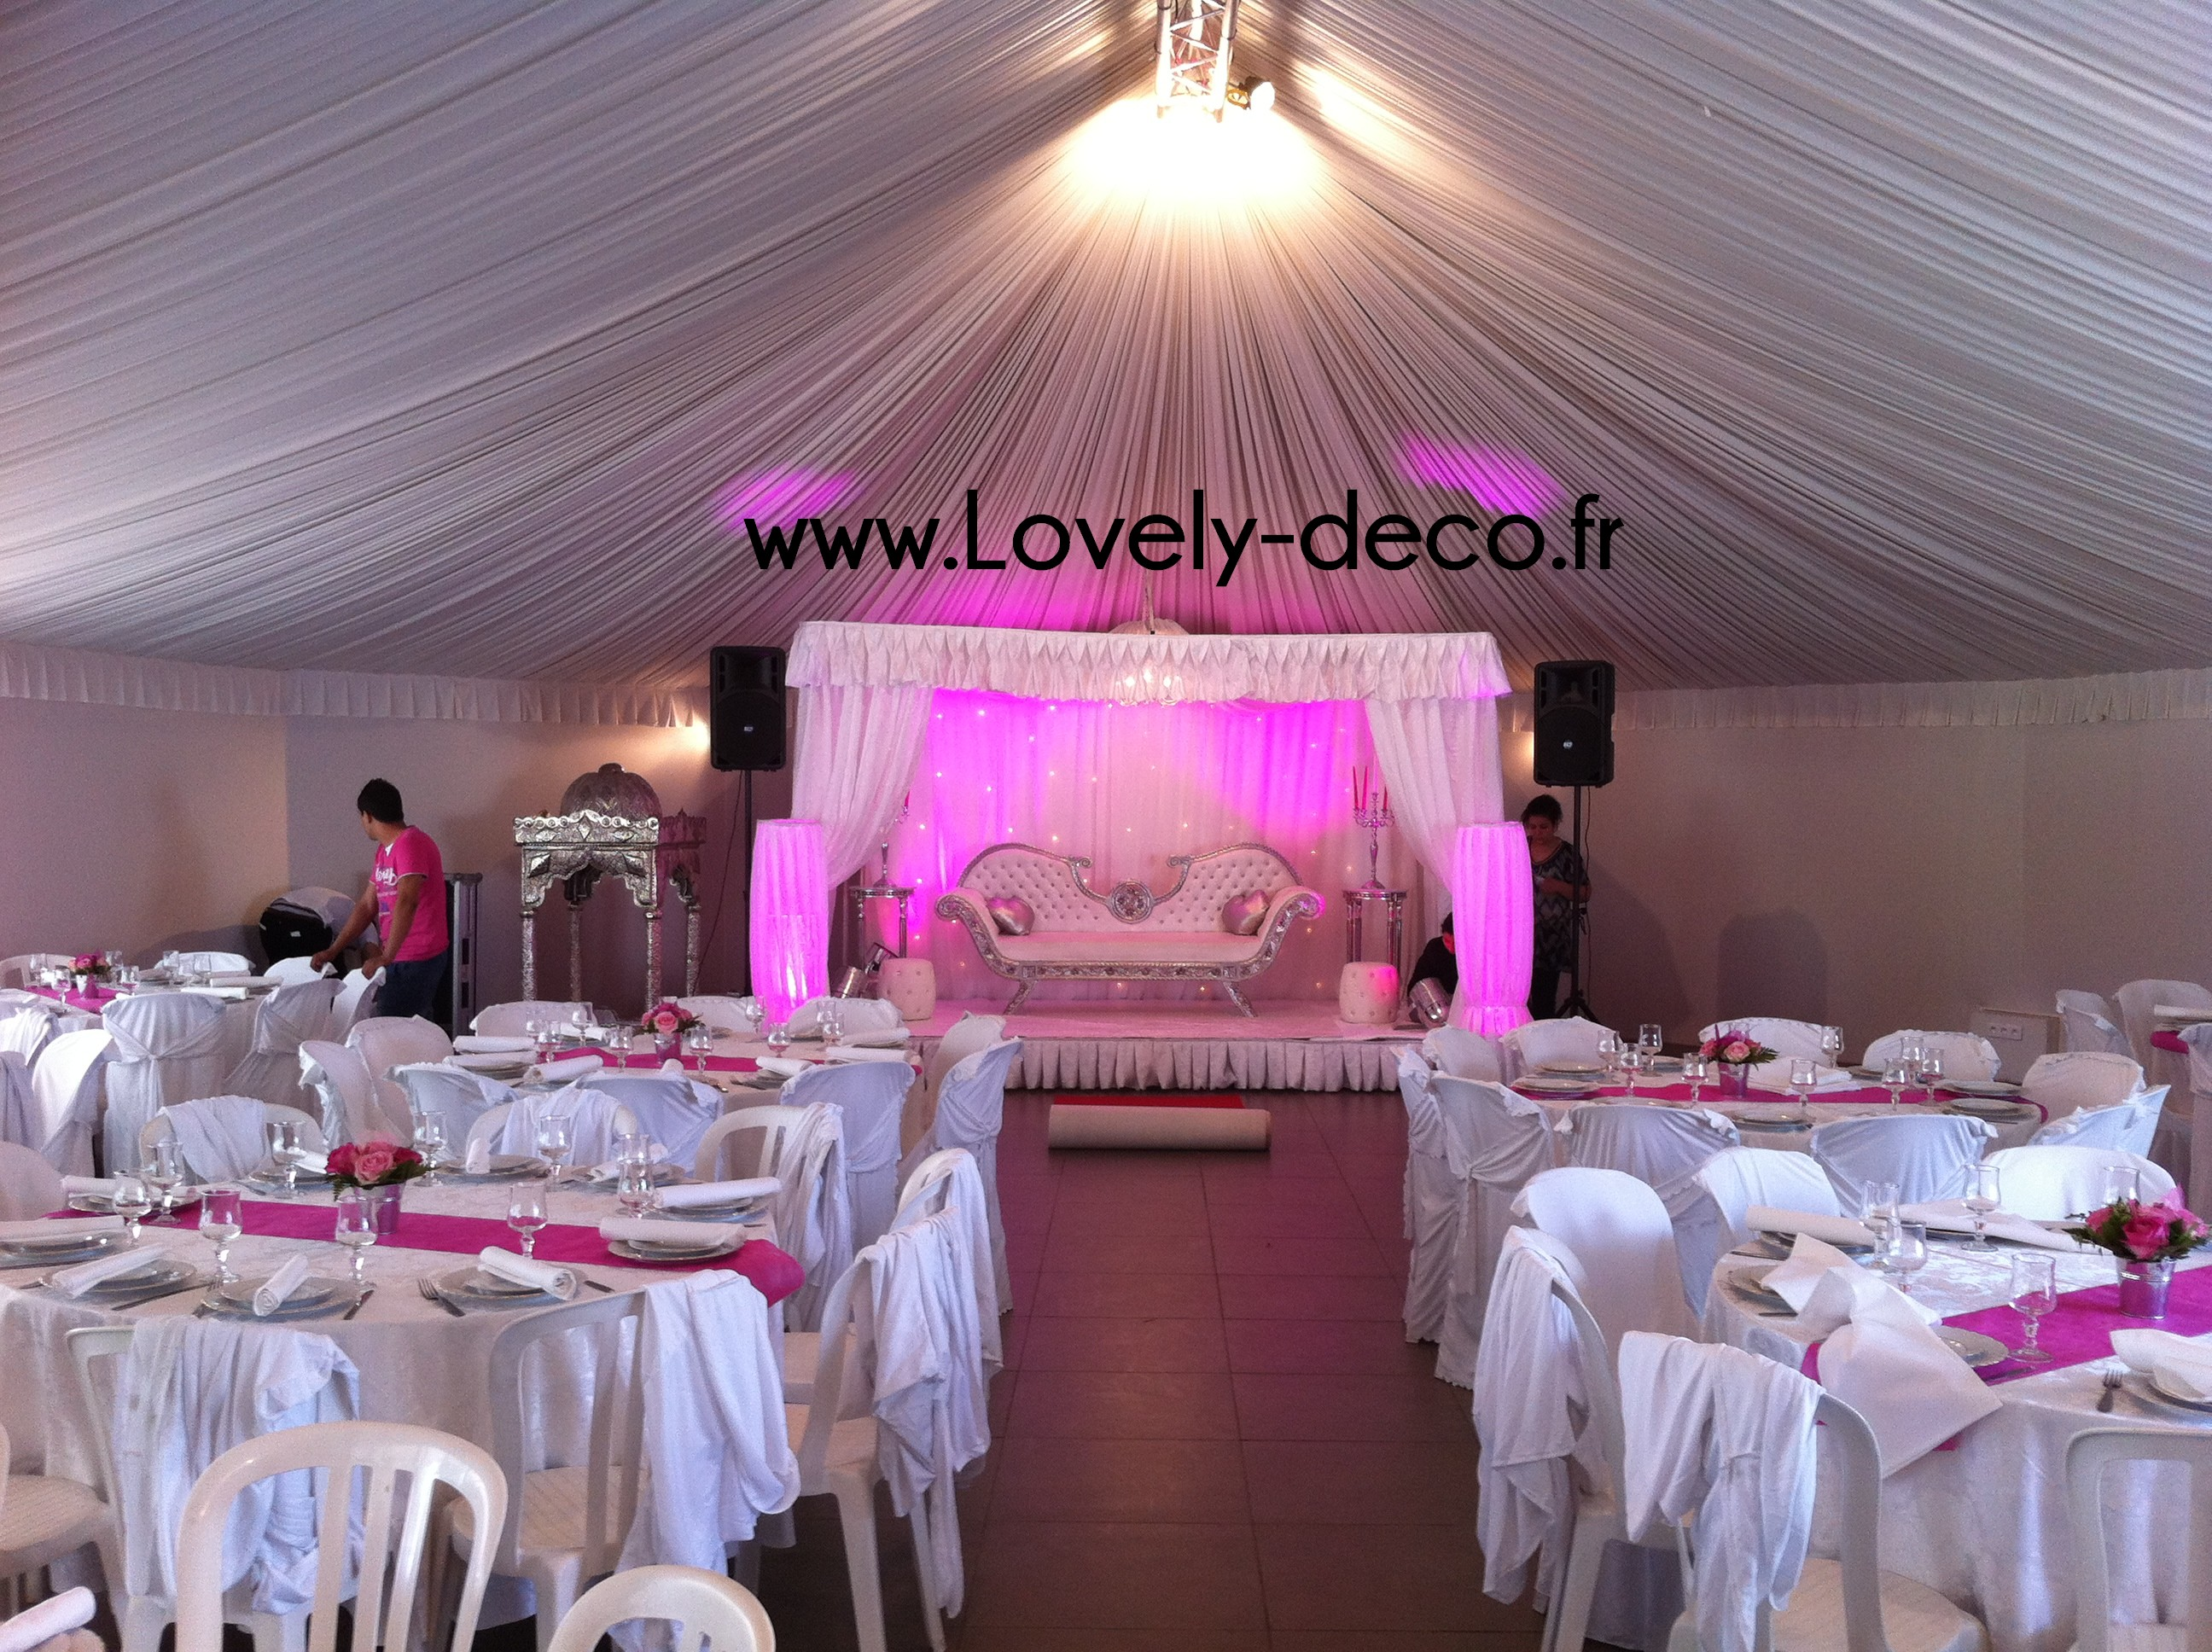 Location Décoration Orientale Lovelydeco Createur D 39evenement